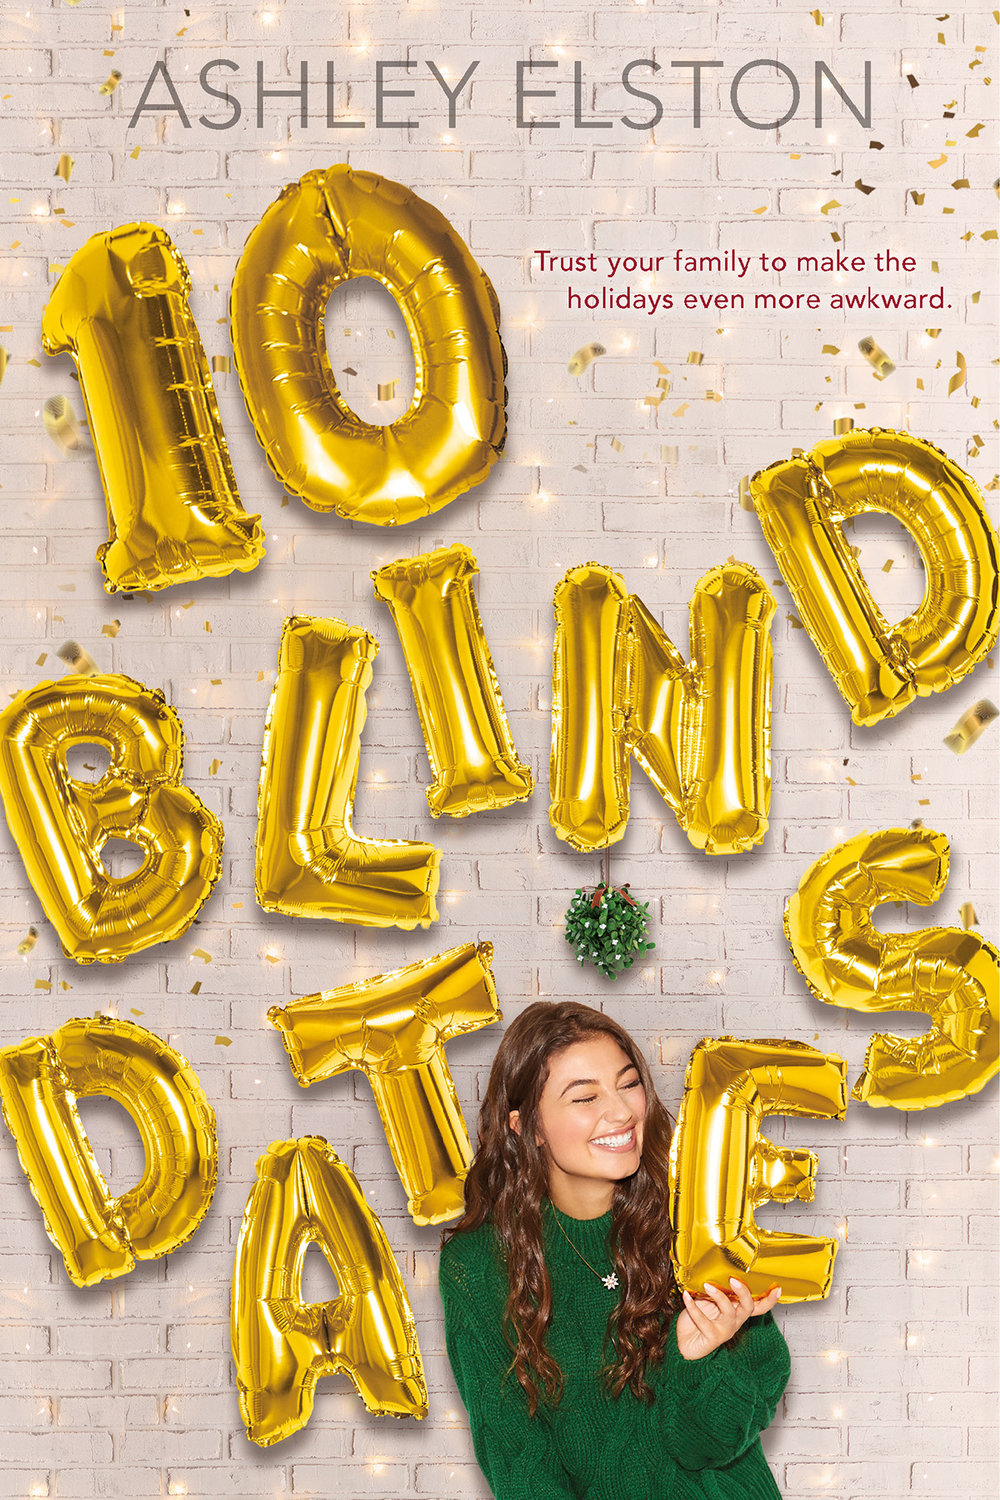 10 BLIND DATES - Pre-order from:Amazon | Barnes & Noble | Books-A-Million | Indie Bound | GooglePlaySophie wants one thing for Christmas-a little freedom from her overprotective parents. So when they decide to spend Christmas in South Louisiana with her very pregnant older sister, Sophie is looking forward to some much needed private (read: make-out) time with her long-term boyfriend, Griffin. Except it turns out that Griffin wants a little freedom from their relationship. Cue devastation.Heartbroken, Sophie flees to her grandparents' house, where the rest of her boisterous extended family is gathered for the holiday. That's when her nonna devises a (not so) brilliant plan: Over the next ten days, Sophie will be set up on ten different blind dates by different family members. Like her sweet cousin Sara, who sets her up with a hot guy at an exclusive underground party. Or her crazy aunt Patrice, who signs Sophie up for a lead role in a living nativity. With a boy who barely reaches her shoulder. And a screaming baby.When Griffin turns up unexpectedly and begs for a second chance, Sophie feels more confused than ever. Because maybe, just maybe, she's started to have feelings for someone else . . . Someone who is definitely not available.This is going to be the worst Christmas break ever... or is it?